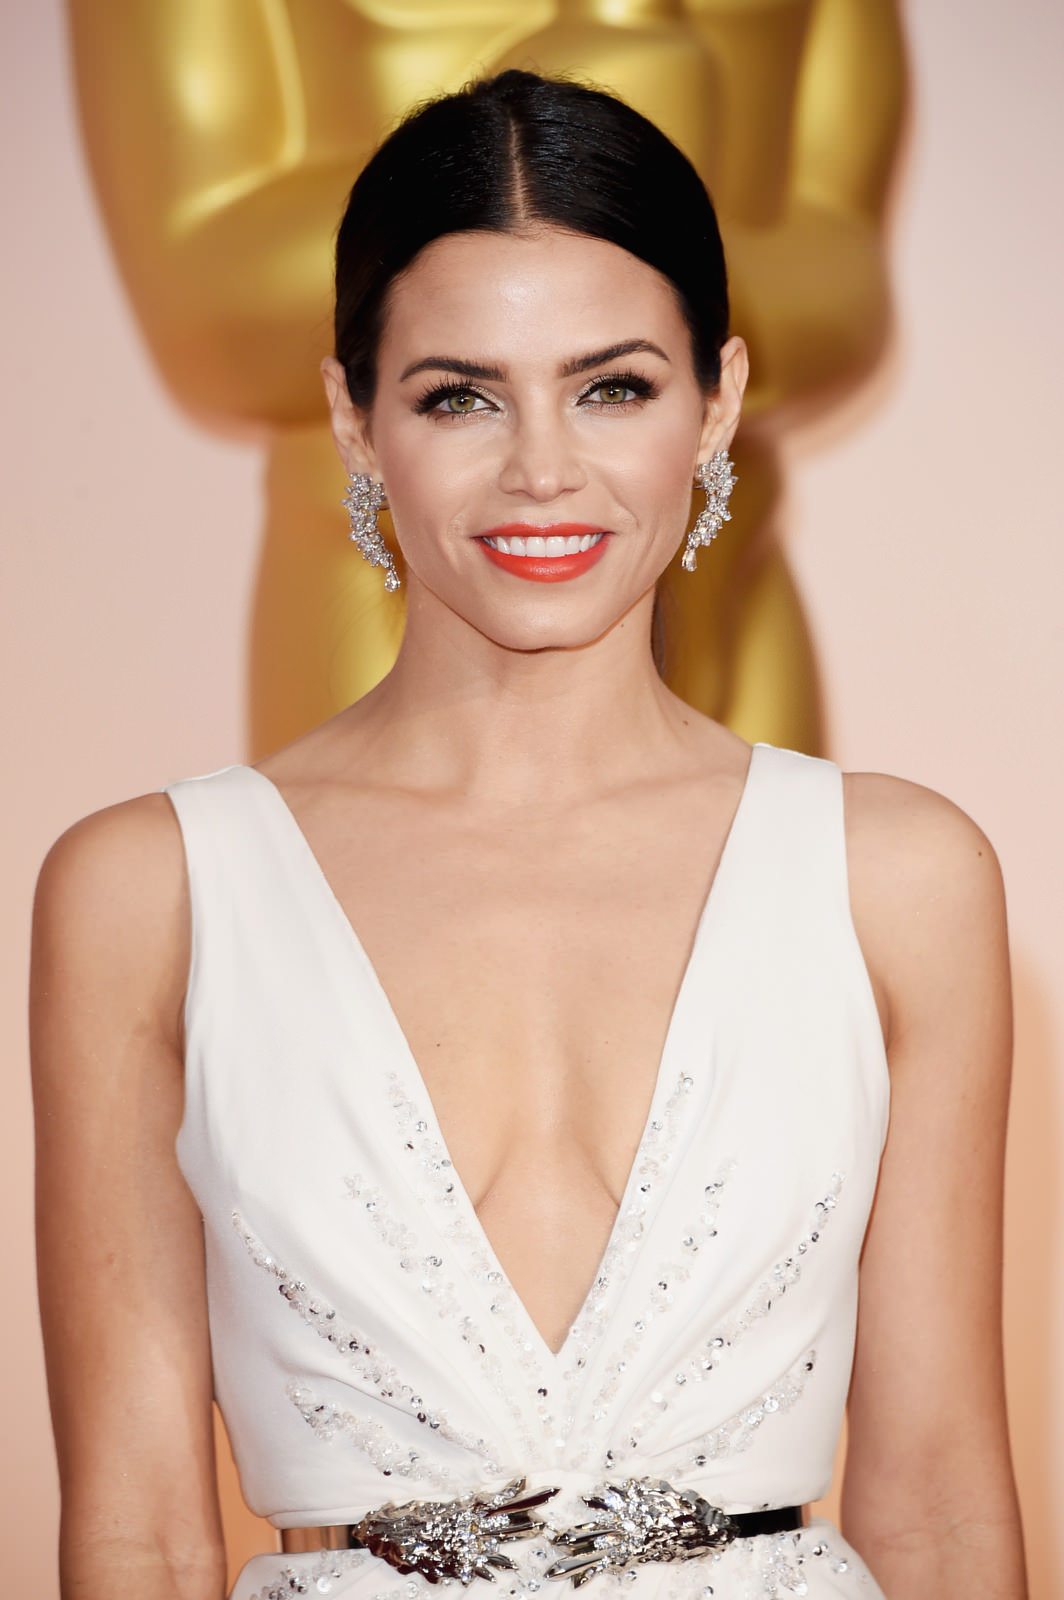 Jenna Dewan Photo Gallery